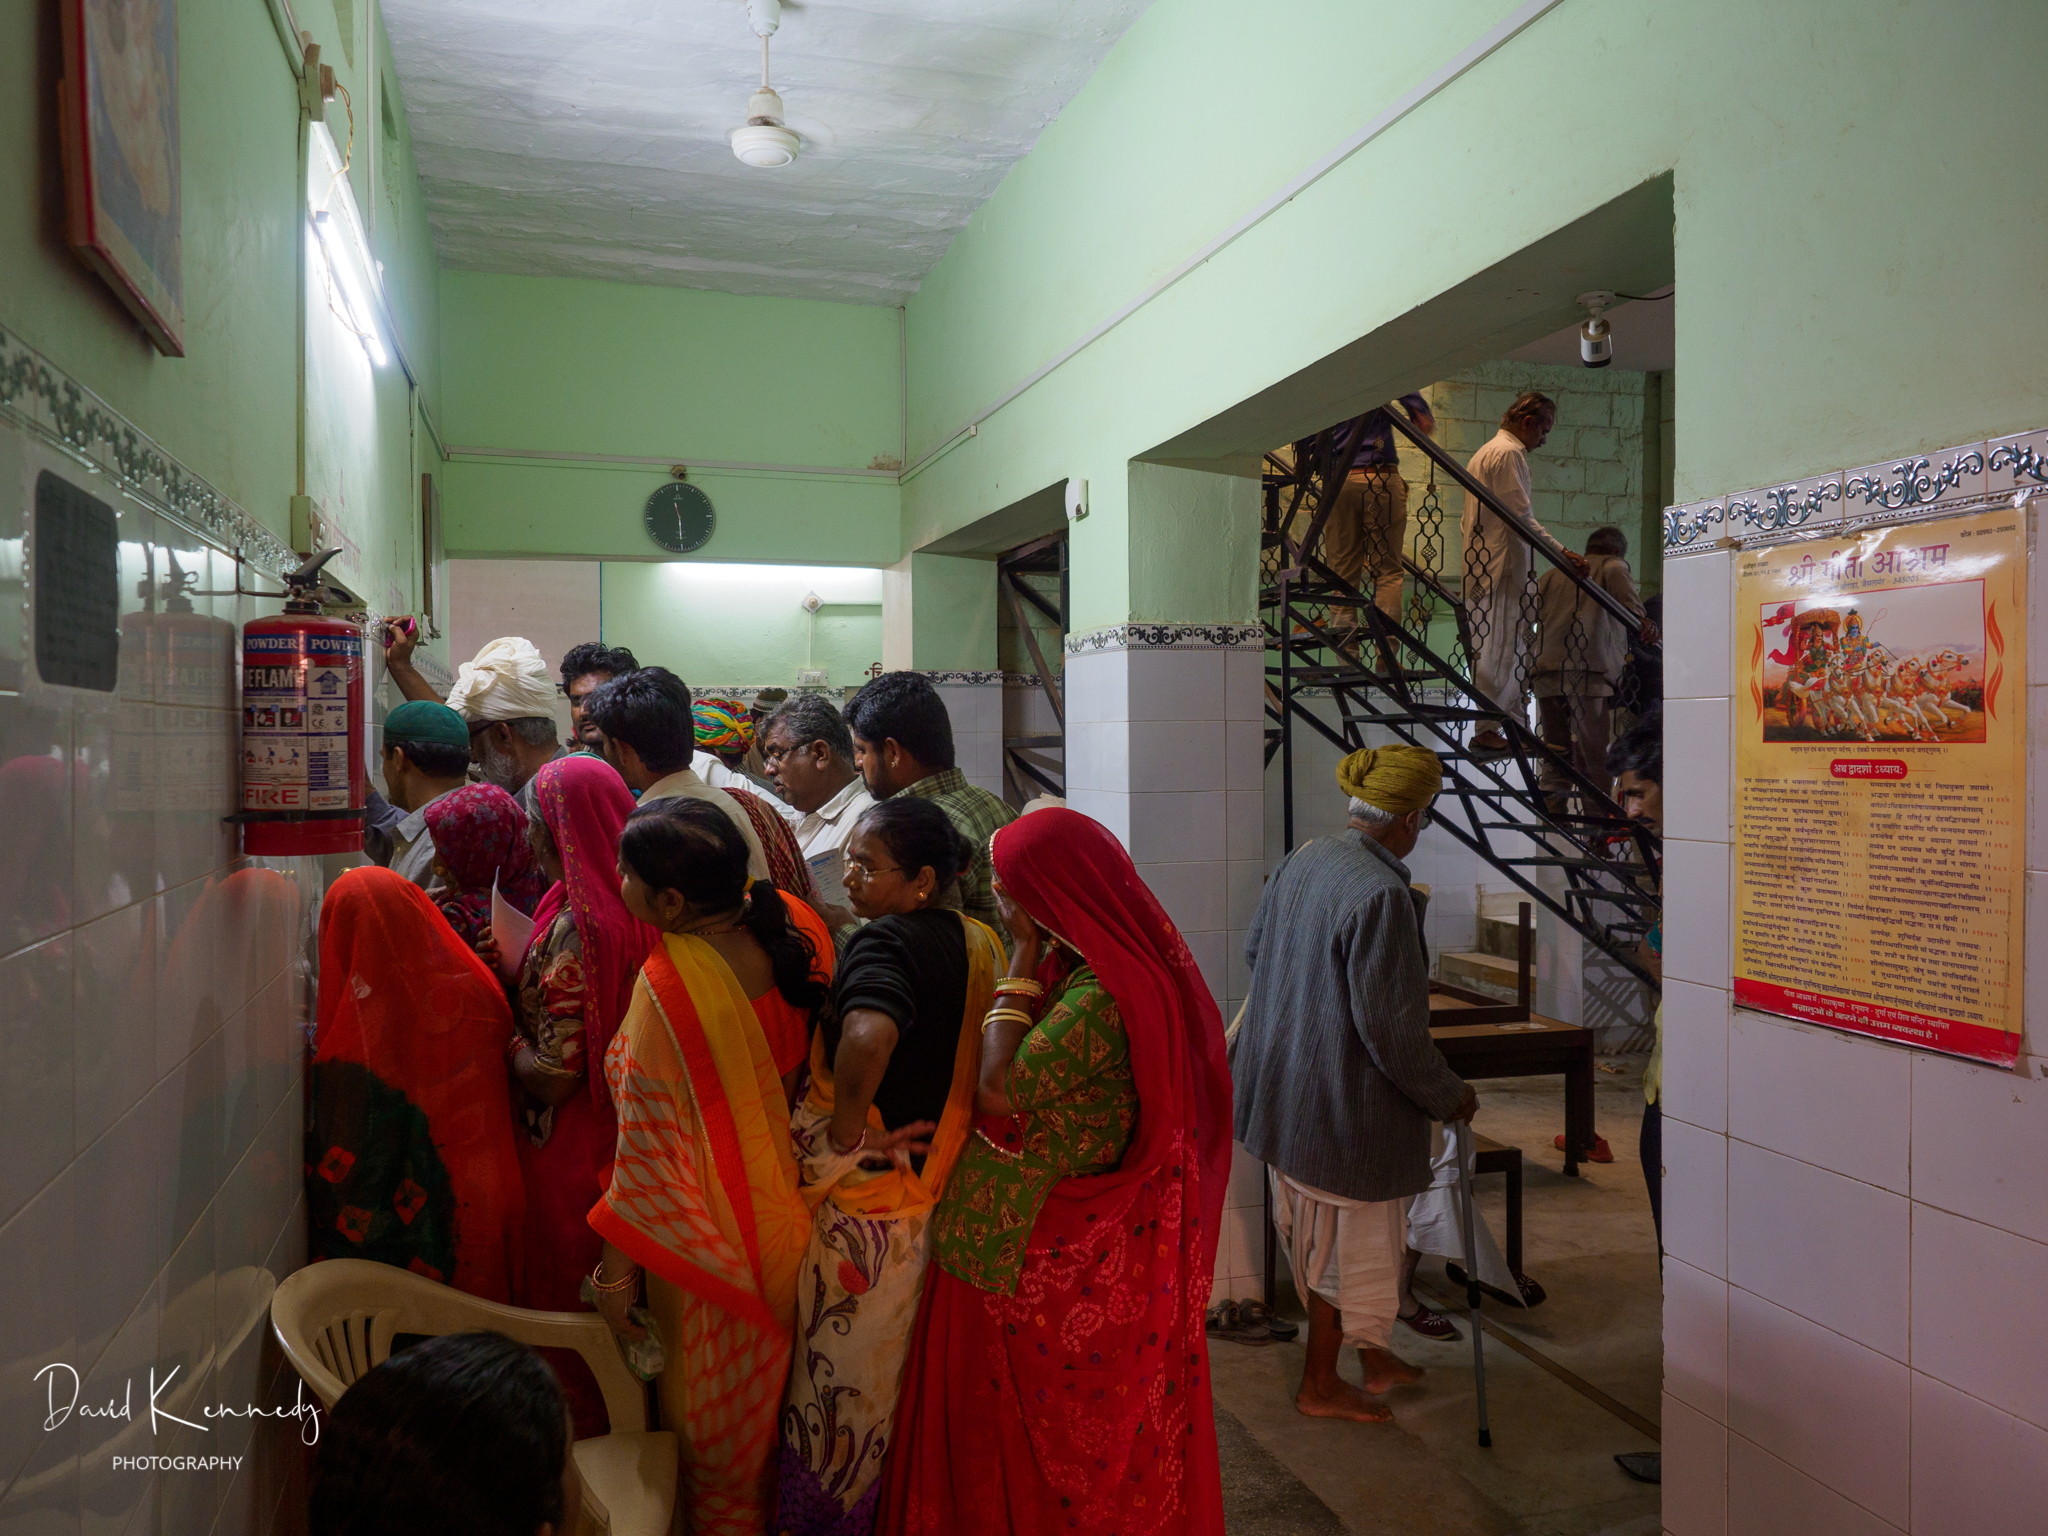 A group of people waiting outside a treatment room in an eye clinic, India